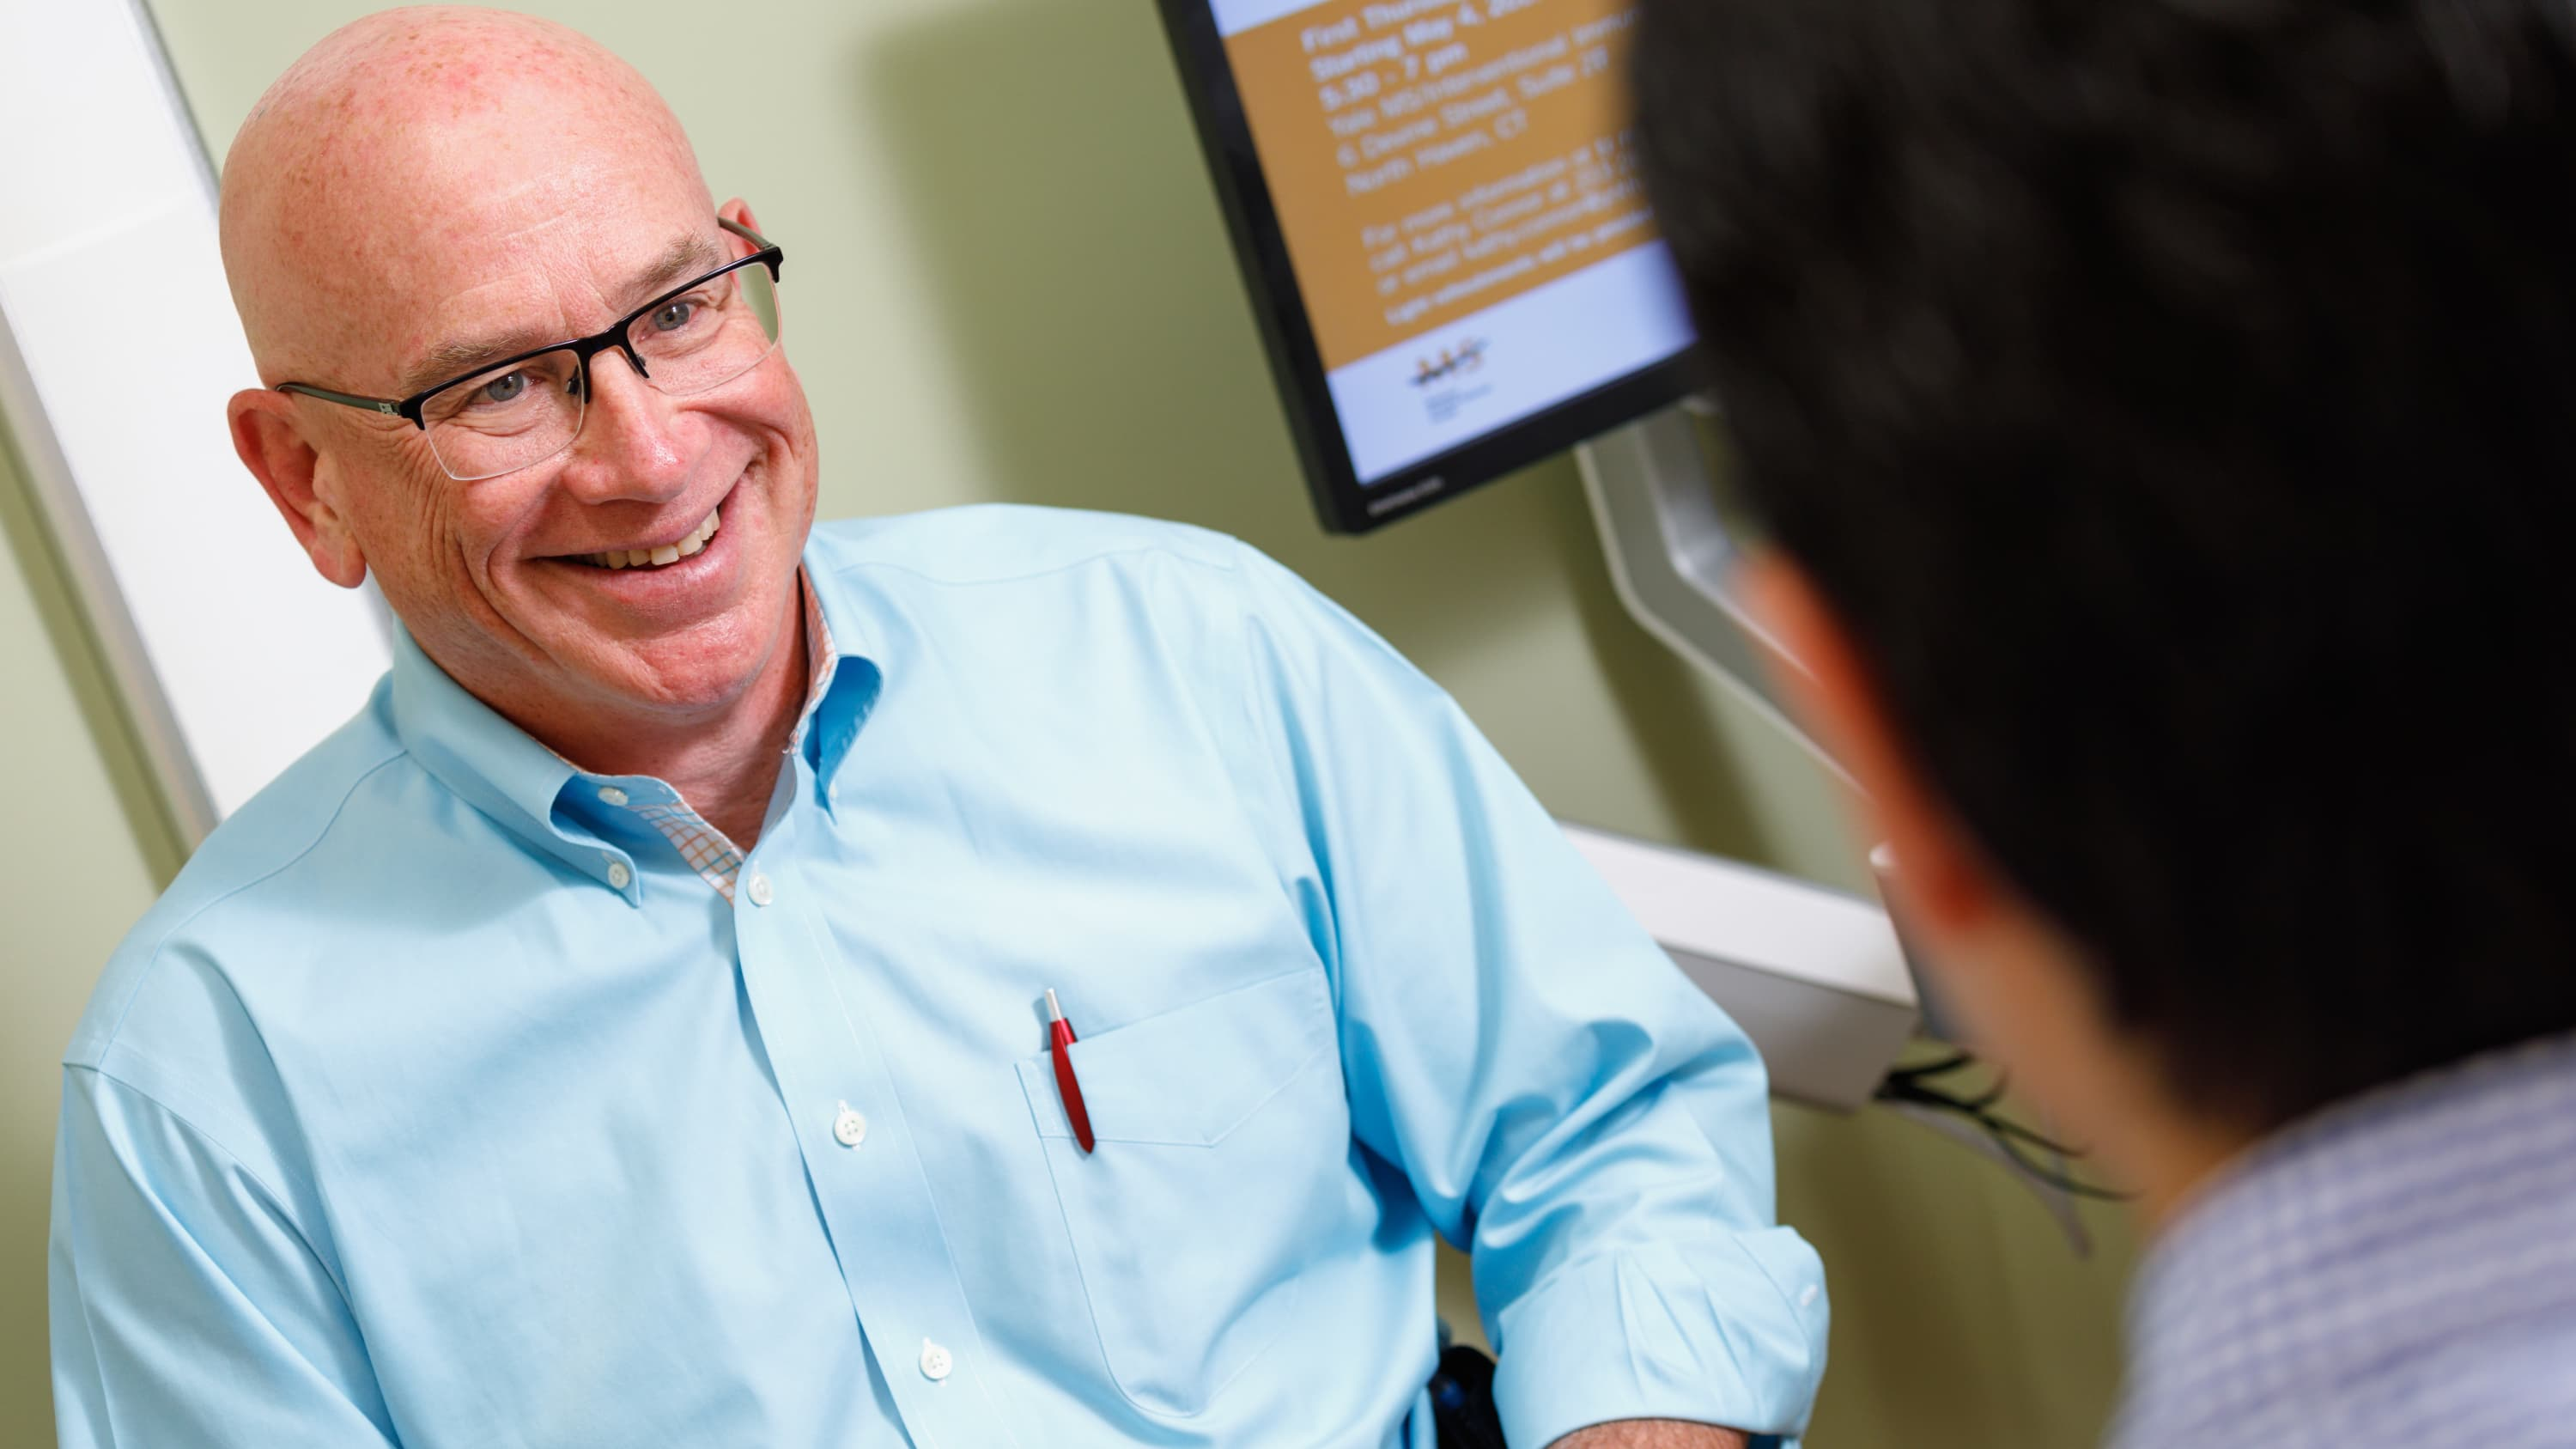 Dr. Honig talks to a patient.